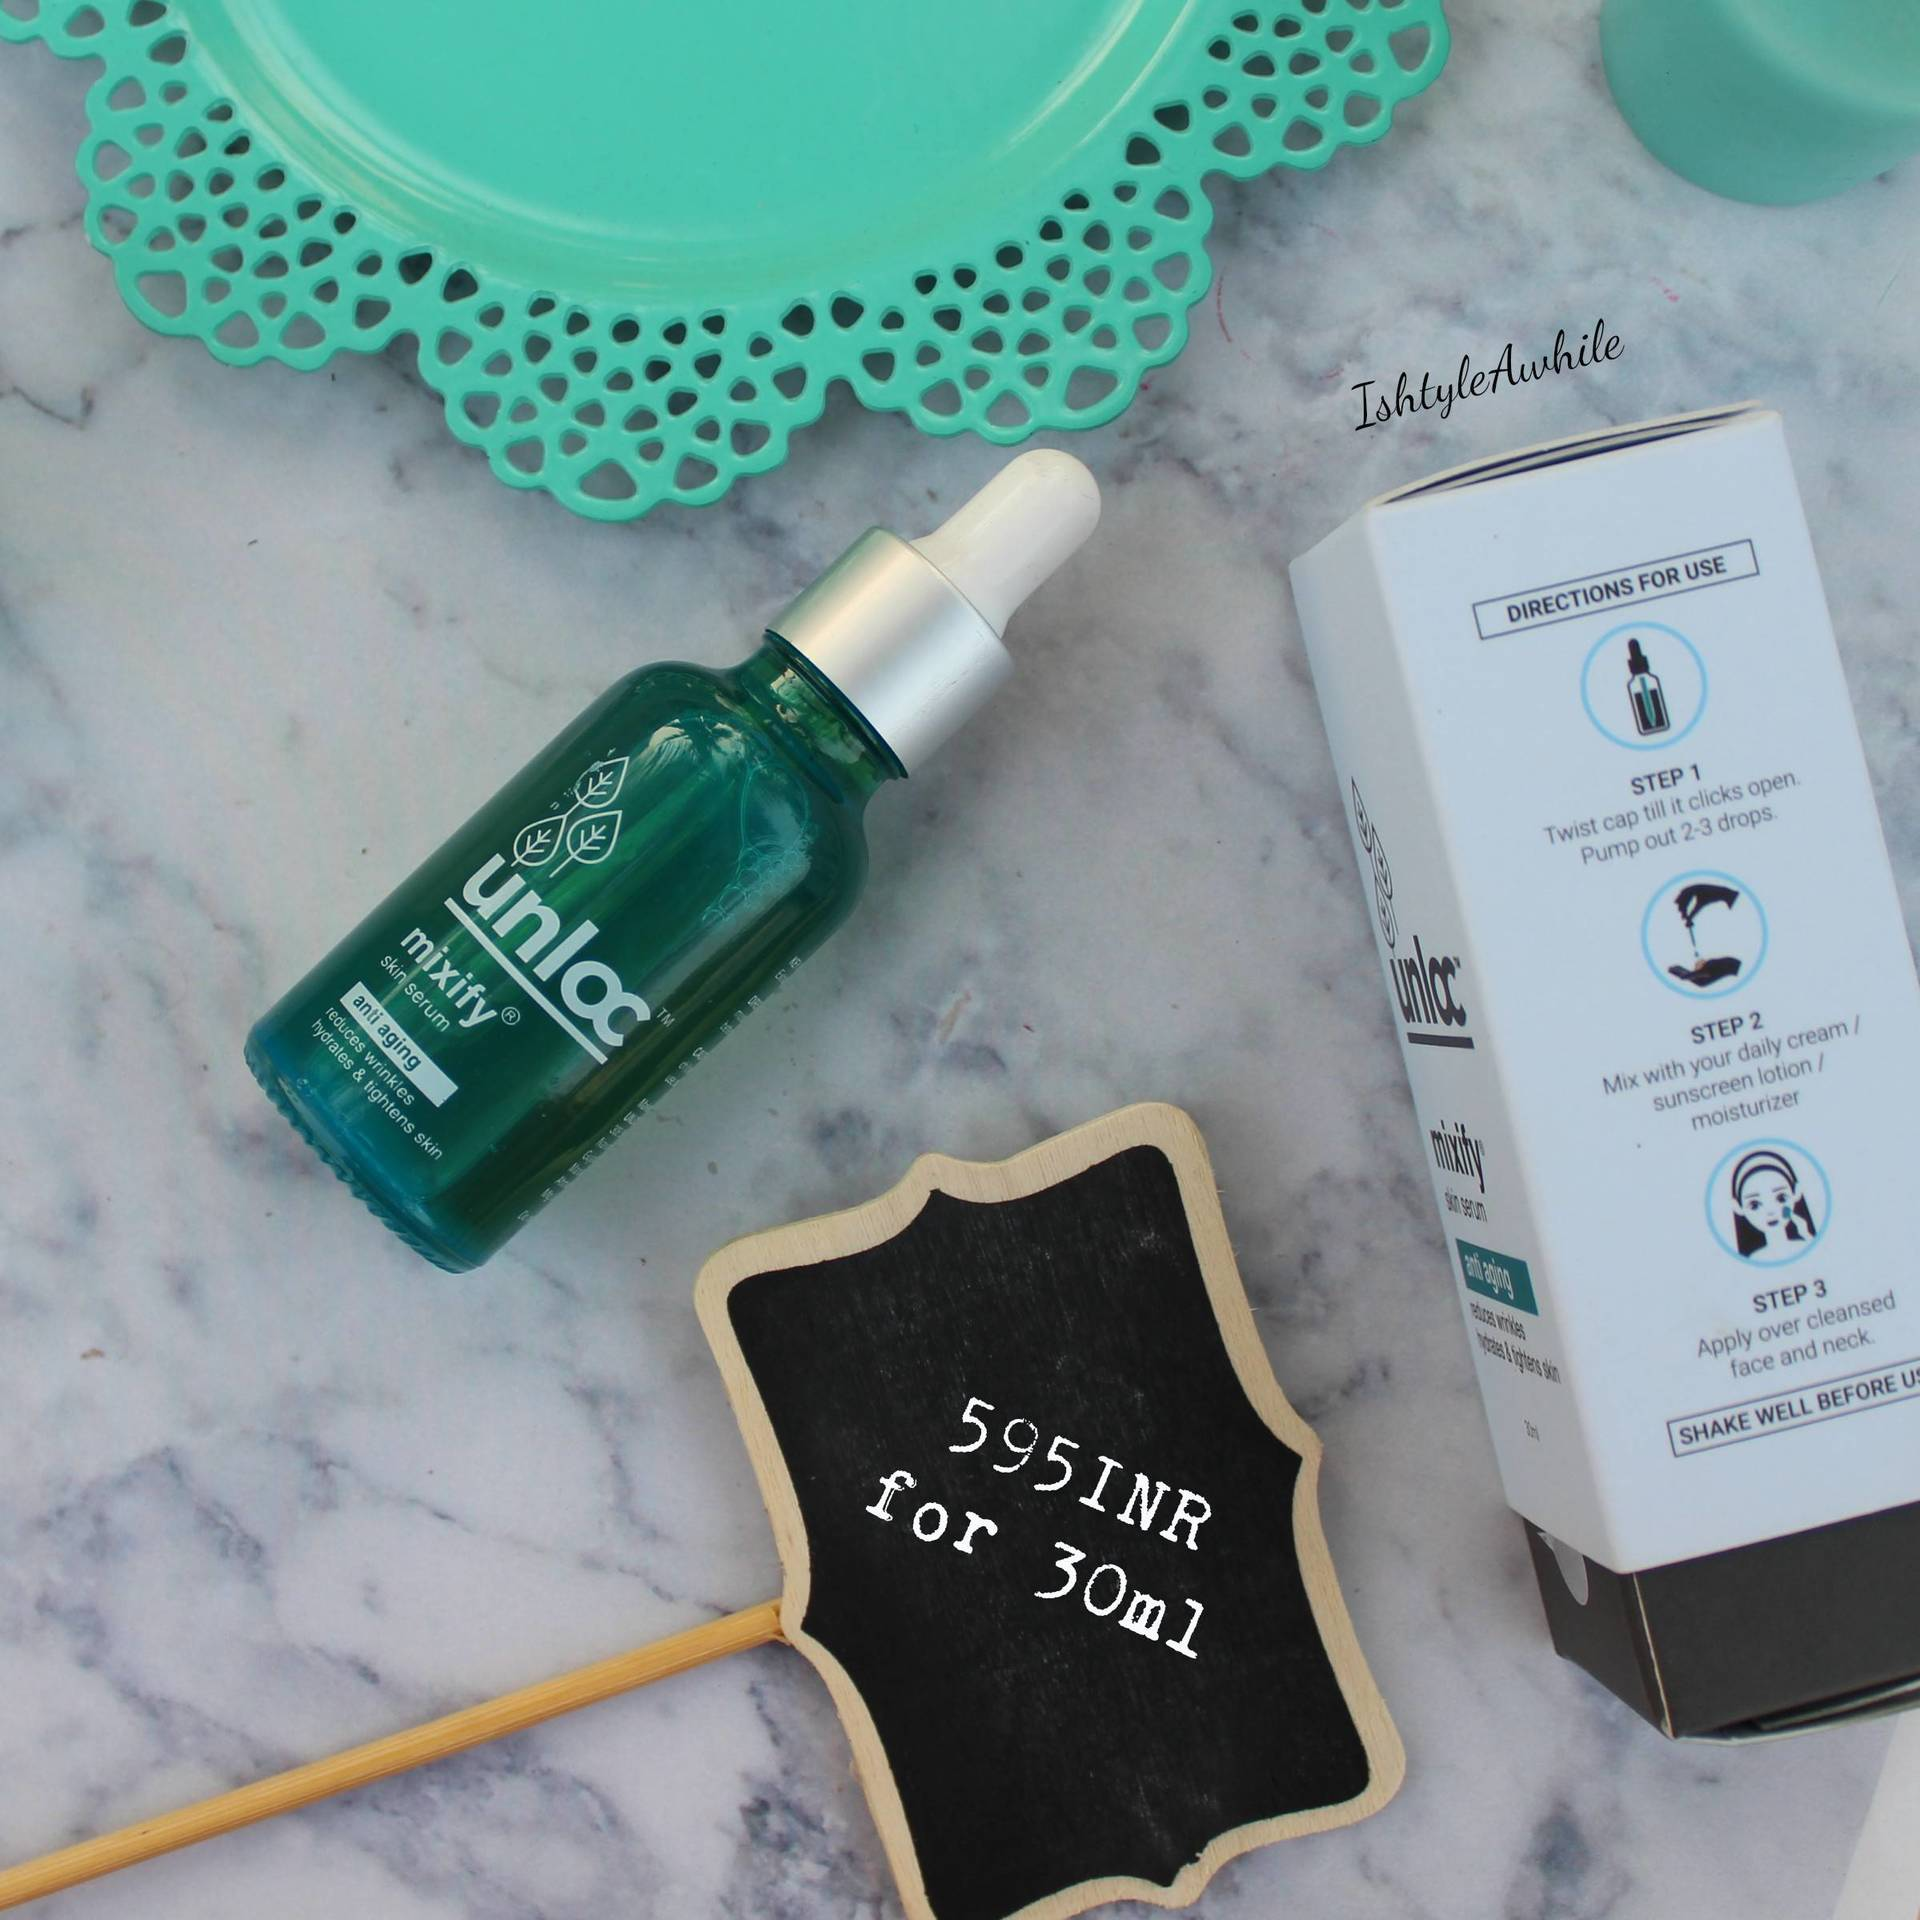 IshtyleAwhile - unloc anti ageing serum review